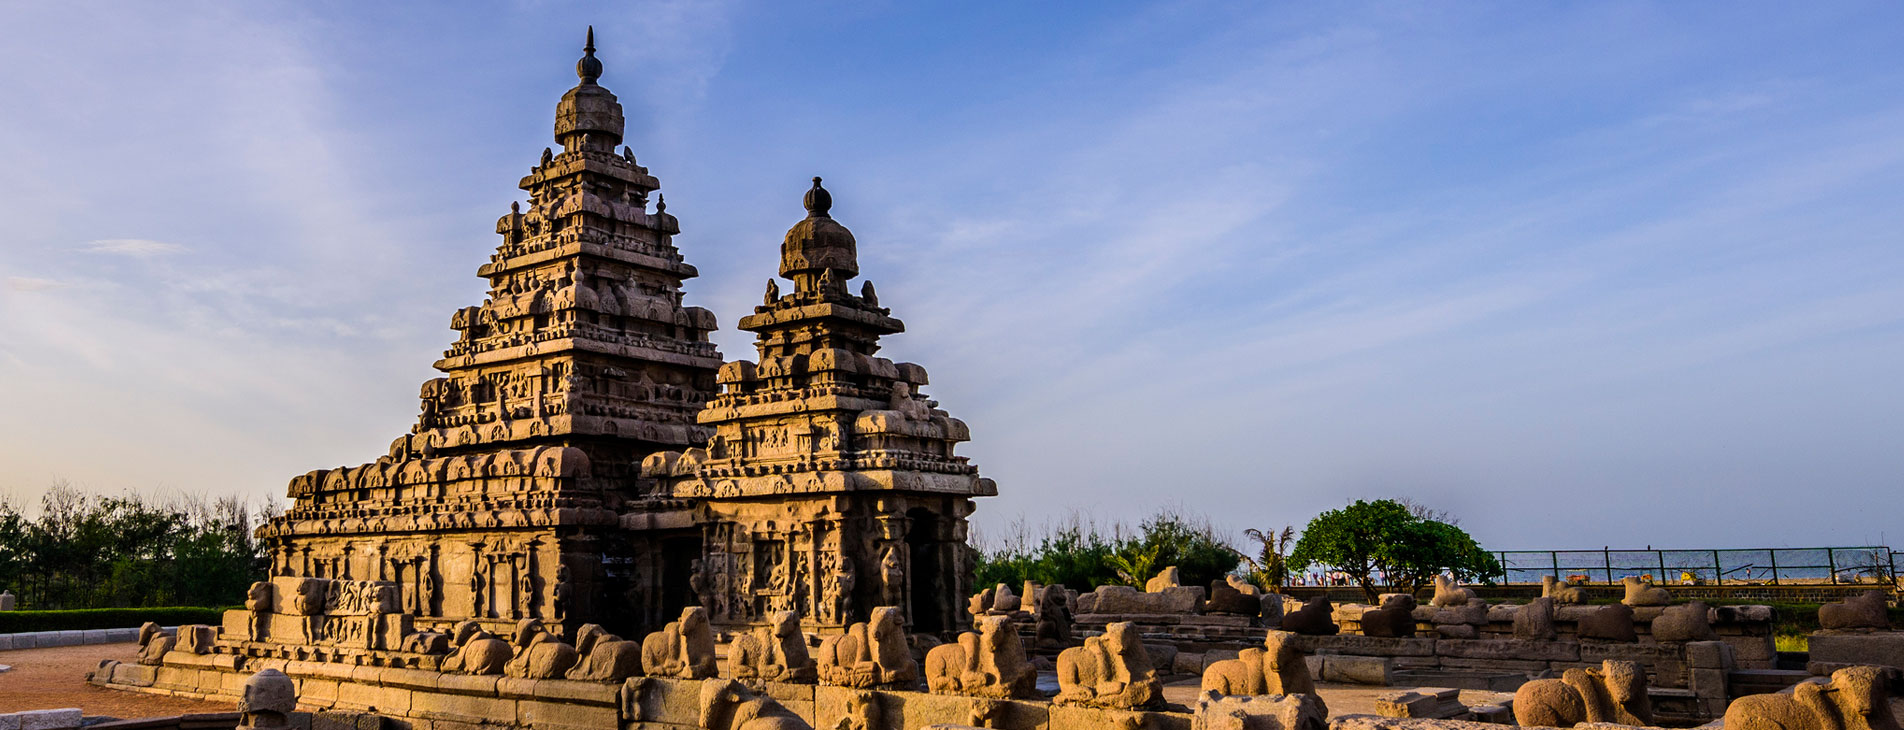 19 Amazing South Indian Temples That Will Blow Your Mind With Their Architectural Excellence